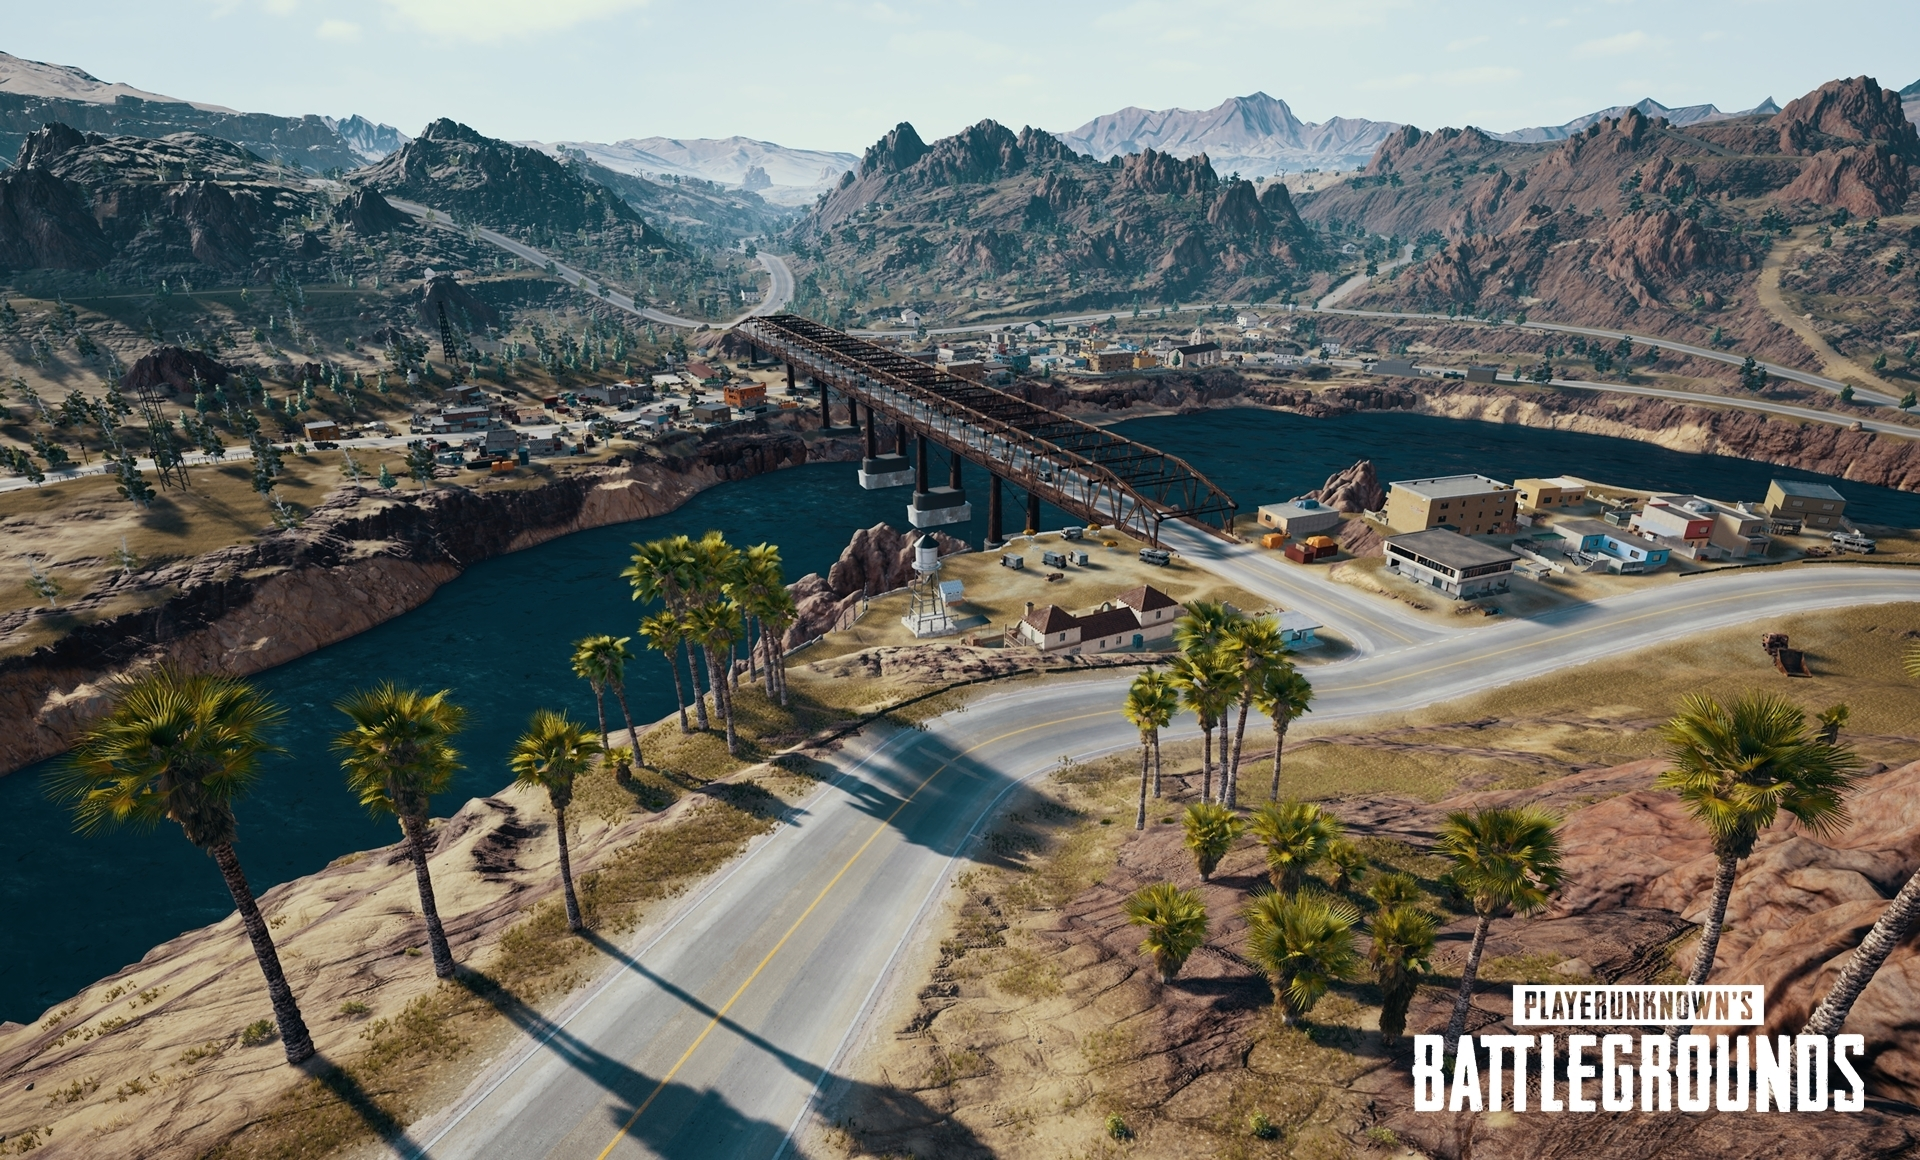 Dec 15, 2017 1 0 Test Build Patch Notes #3 PLAYERUNKNOWN'S